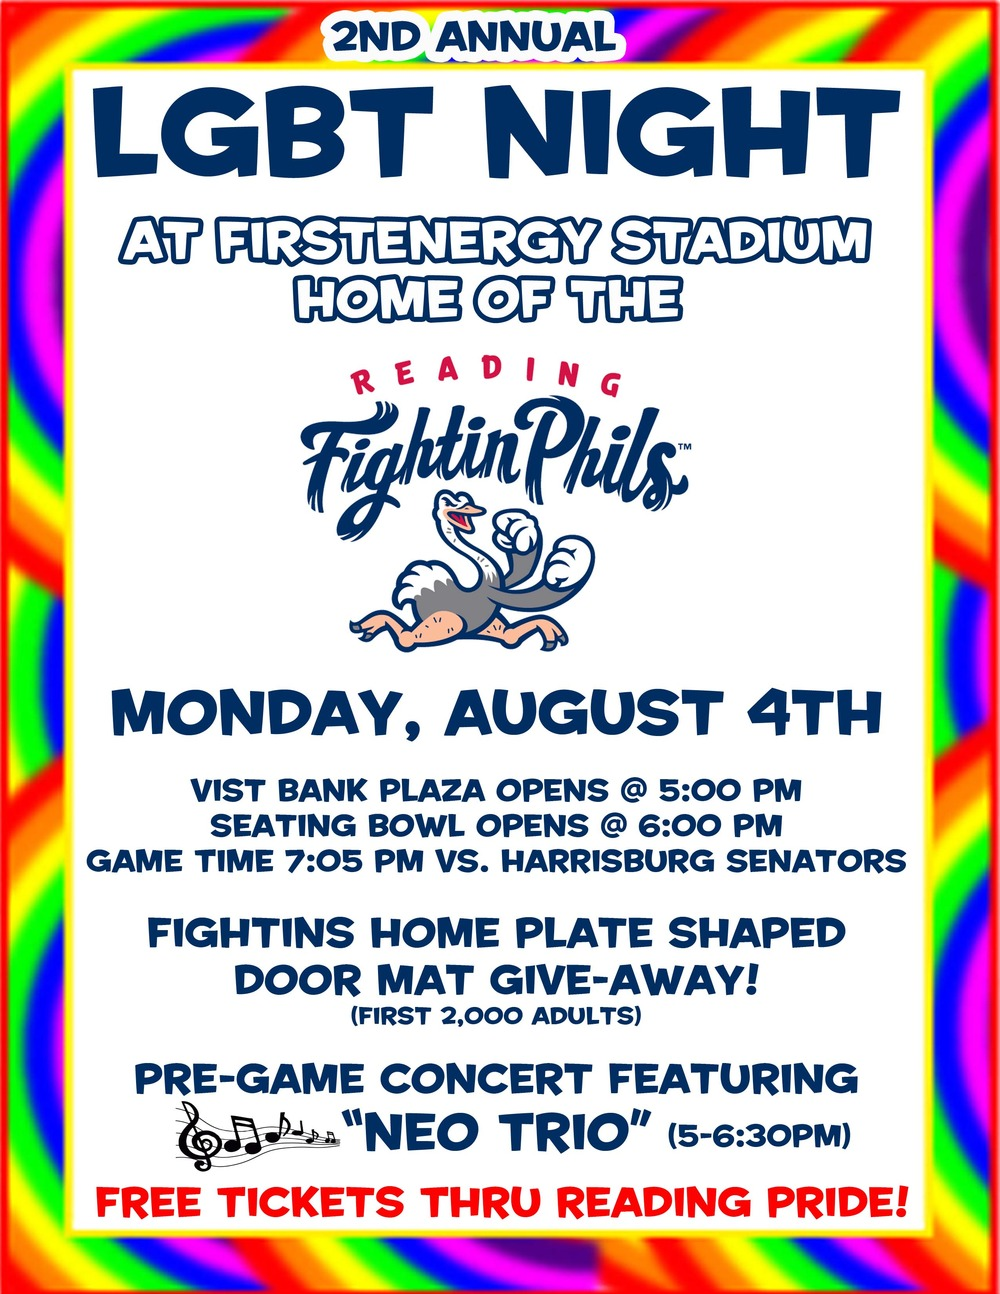 "2nd annual LGBT Night at First Energy Stadium, home of The Fightin Phils!    Vist Bank Plaza opens at 5:00   Seating Bowl opens at 6:00 Game time 7:05 vs. Harrisburg Senators    Fighin Phils home plate shaped door mat give-away! (first 2000 adults)    Pre-game concert featuring ""Neo Trio"" 5:00-6:30    Free Tickets through Reading Pride Celebration   Happy Hour: $1 Off All Beer & Pre-Game Concert  Kids Happy Half Hour: 30 Minutes of Free Phunland  www.fightins.com"